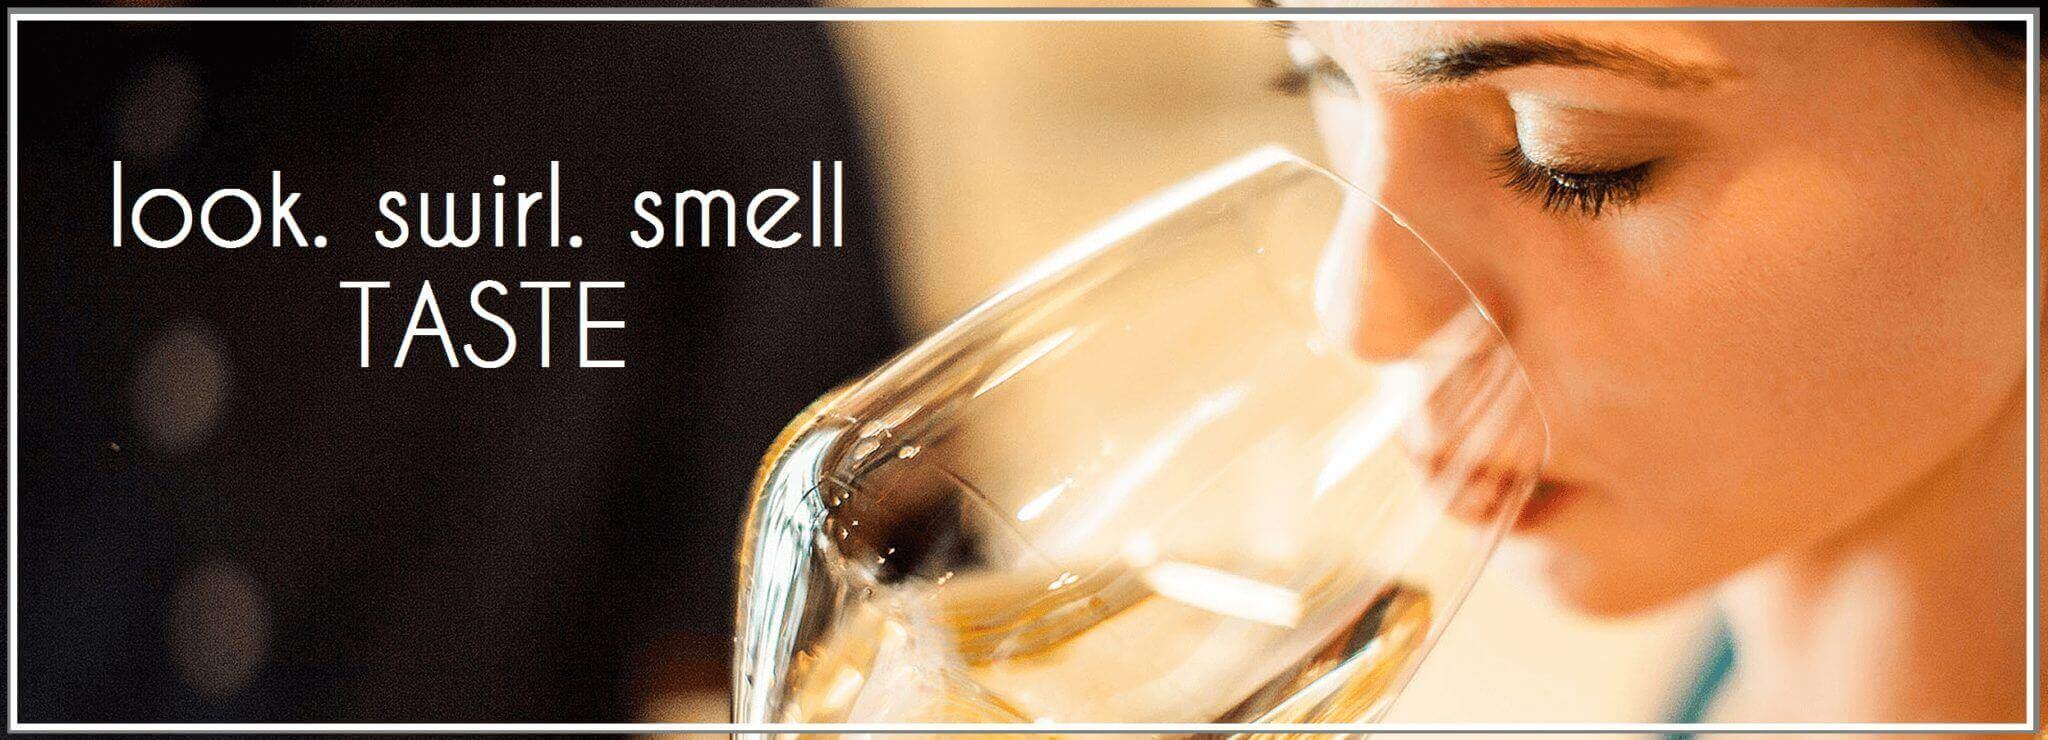 look swirl smell taste at Mile High Wine Tours in Denver Colorado